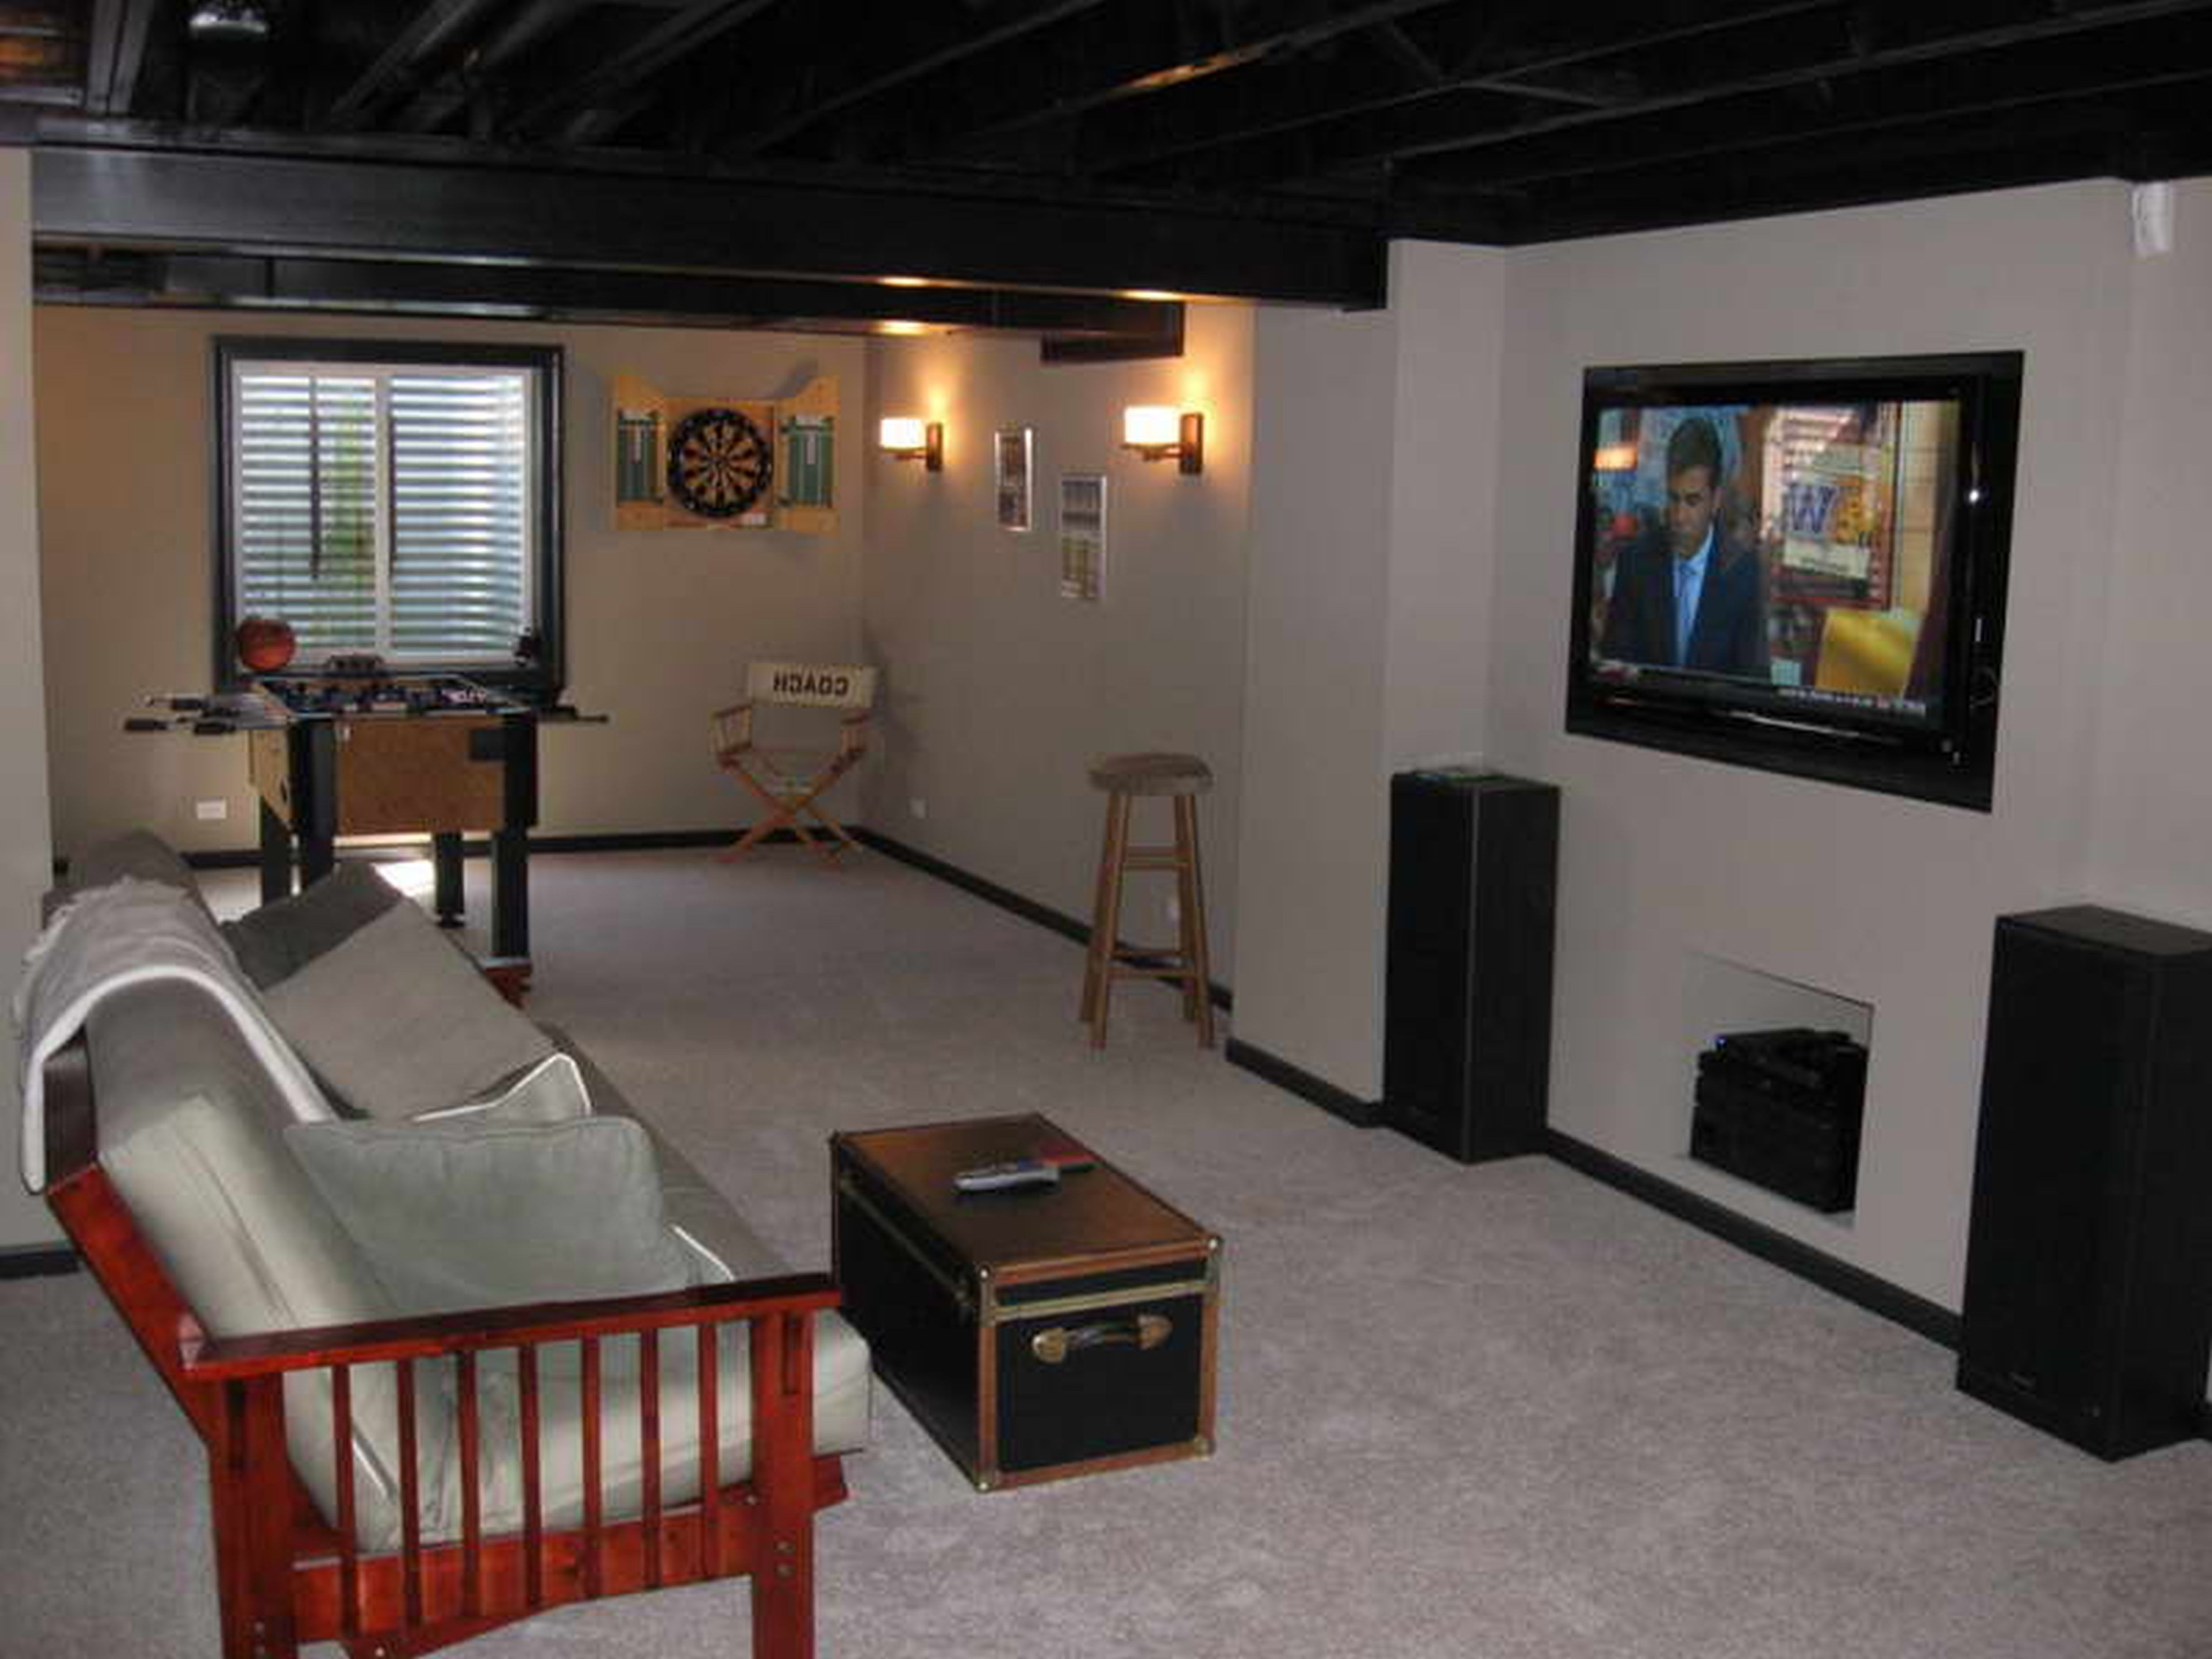 Best ideas about Inexpensive Unfinished Basement Ideas . Save or Pin Awesome Cheap Decorating Ideas For Unfinished Basements Now.